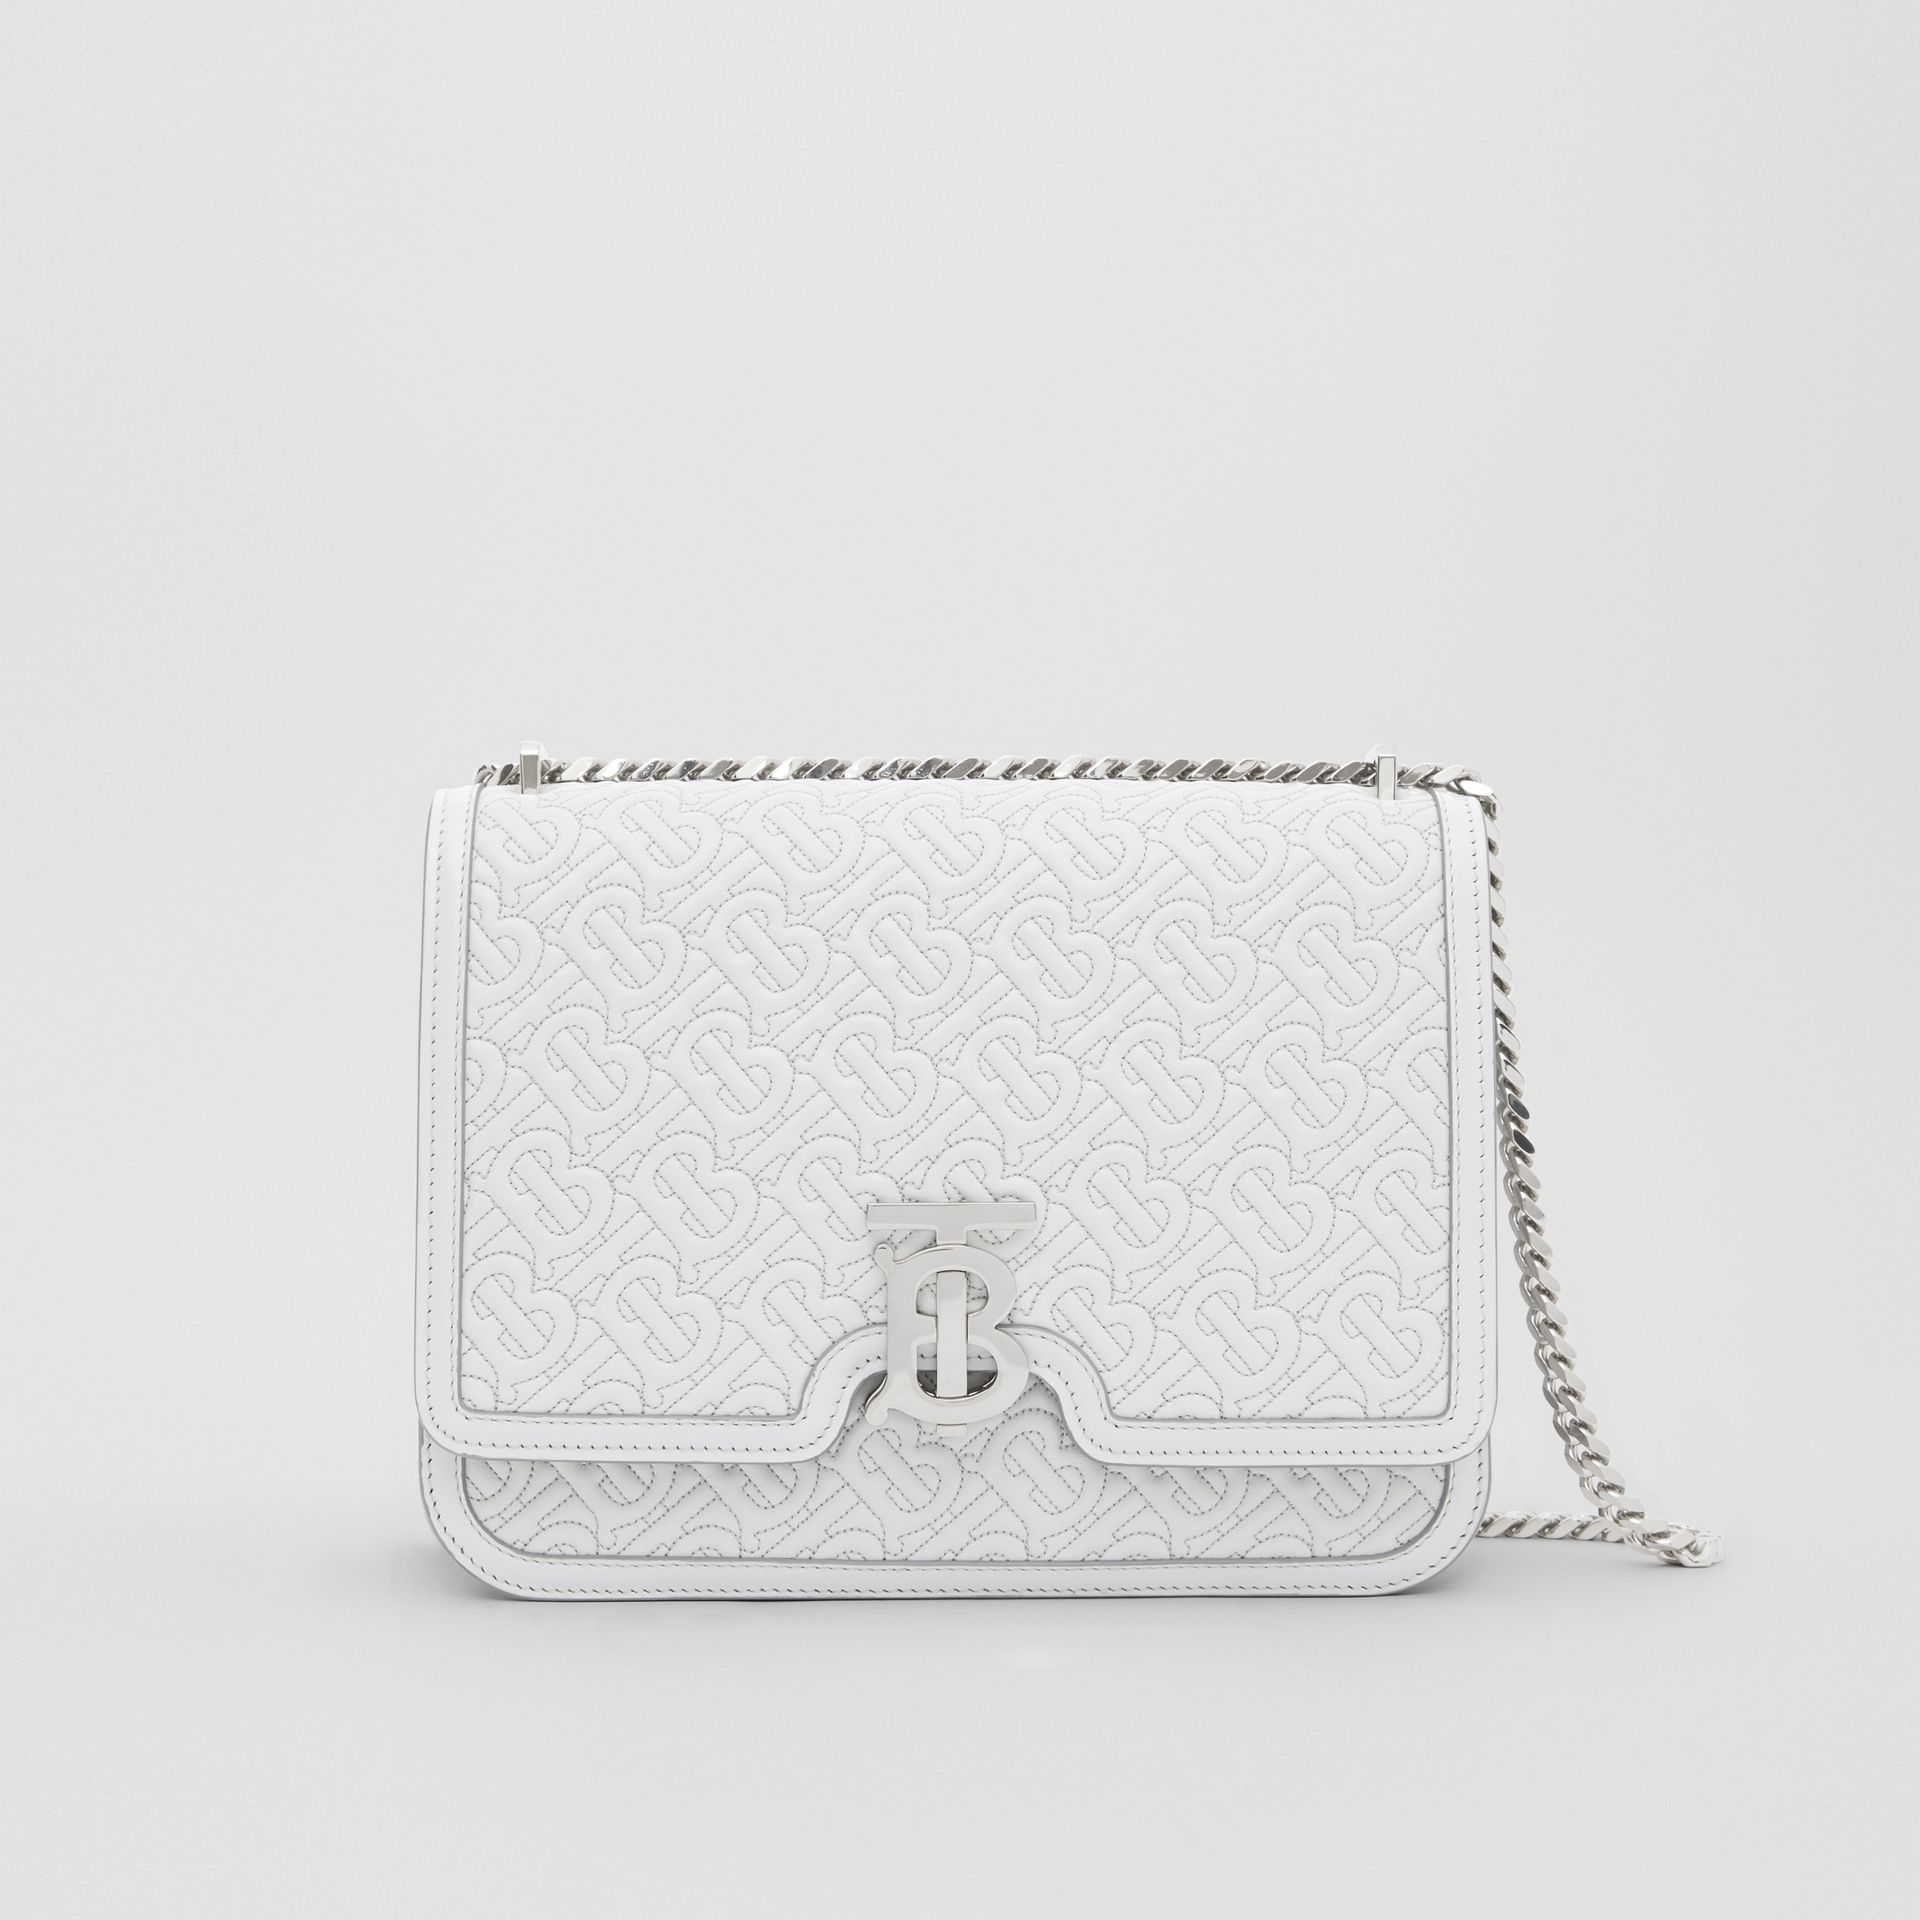 Medium Quilted Monogram Lambskin TB Bag in Light Pebble Grey - Women | Burberry - gallery image 0